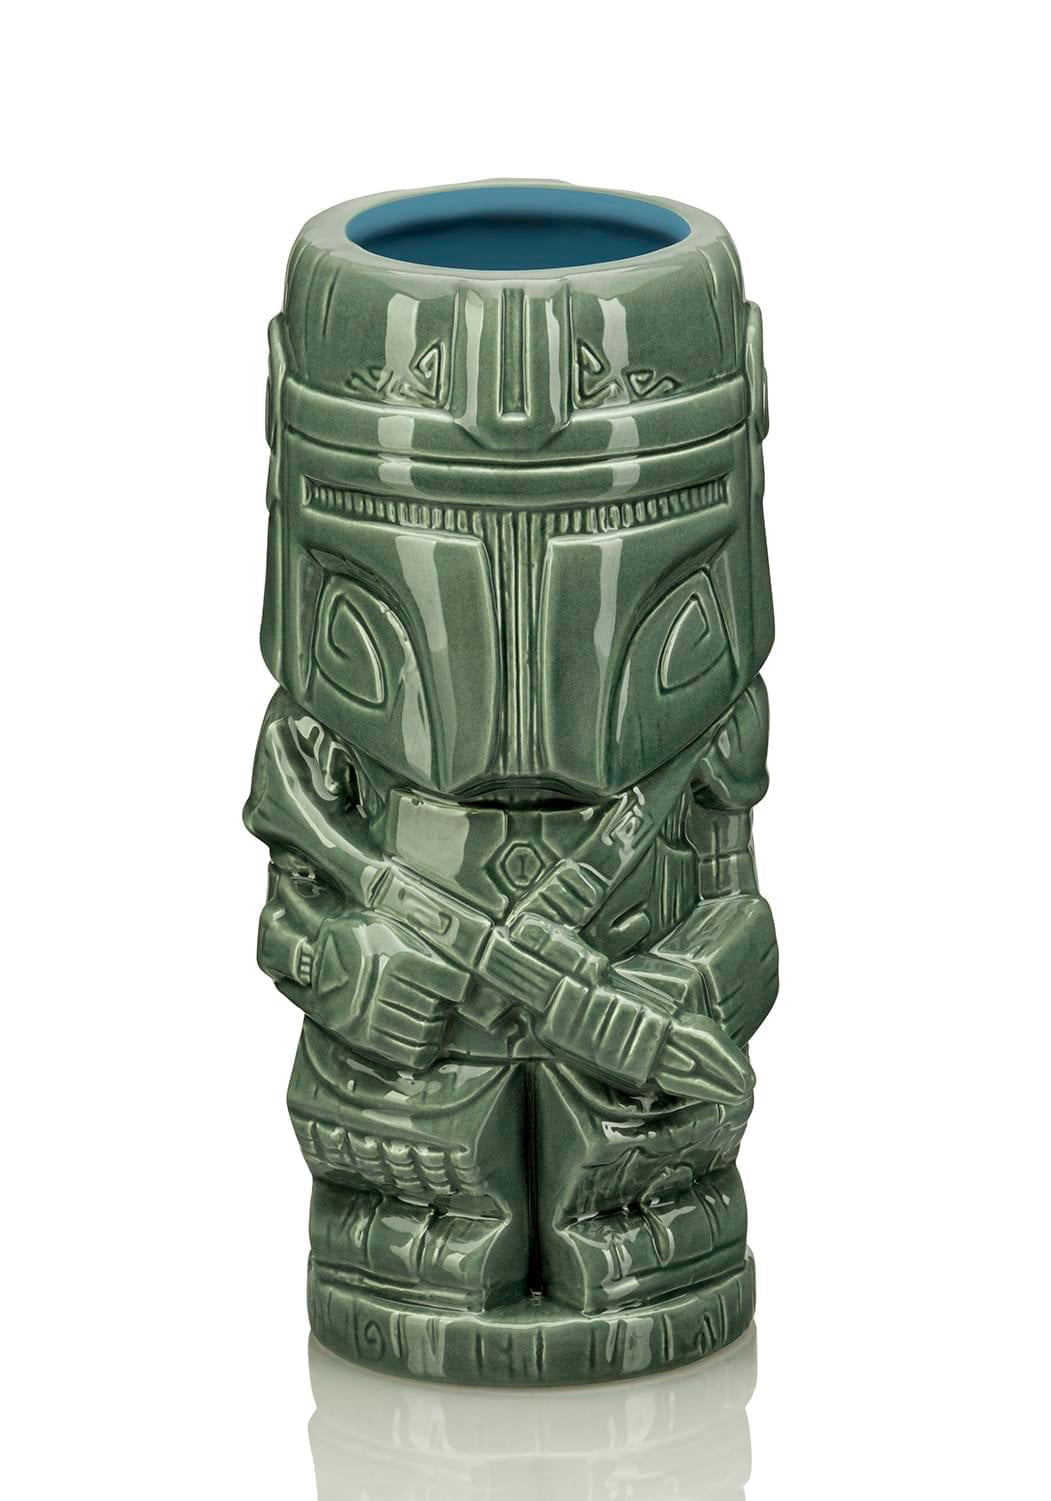 Geeki Tikis Star Wars The Mandalorian Mando Mug | Ceramic Tiki Cup | 20 Ounces